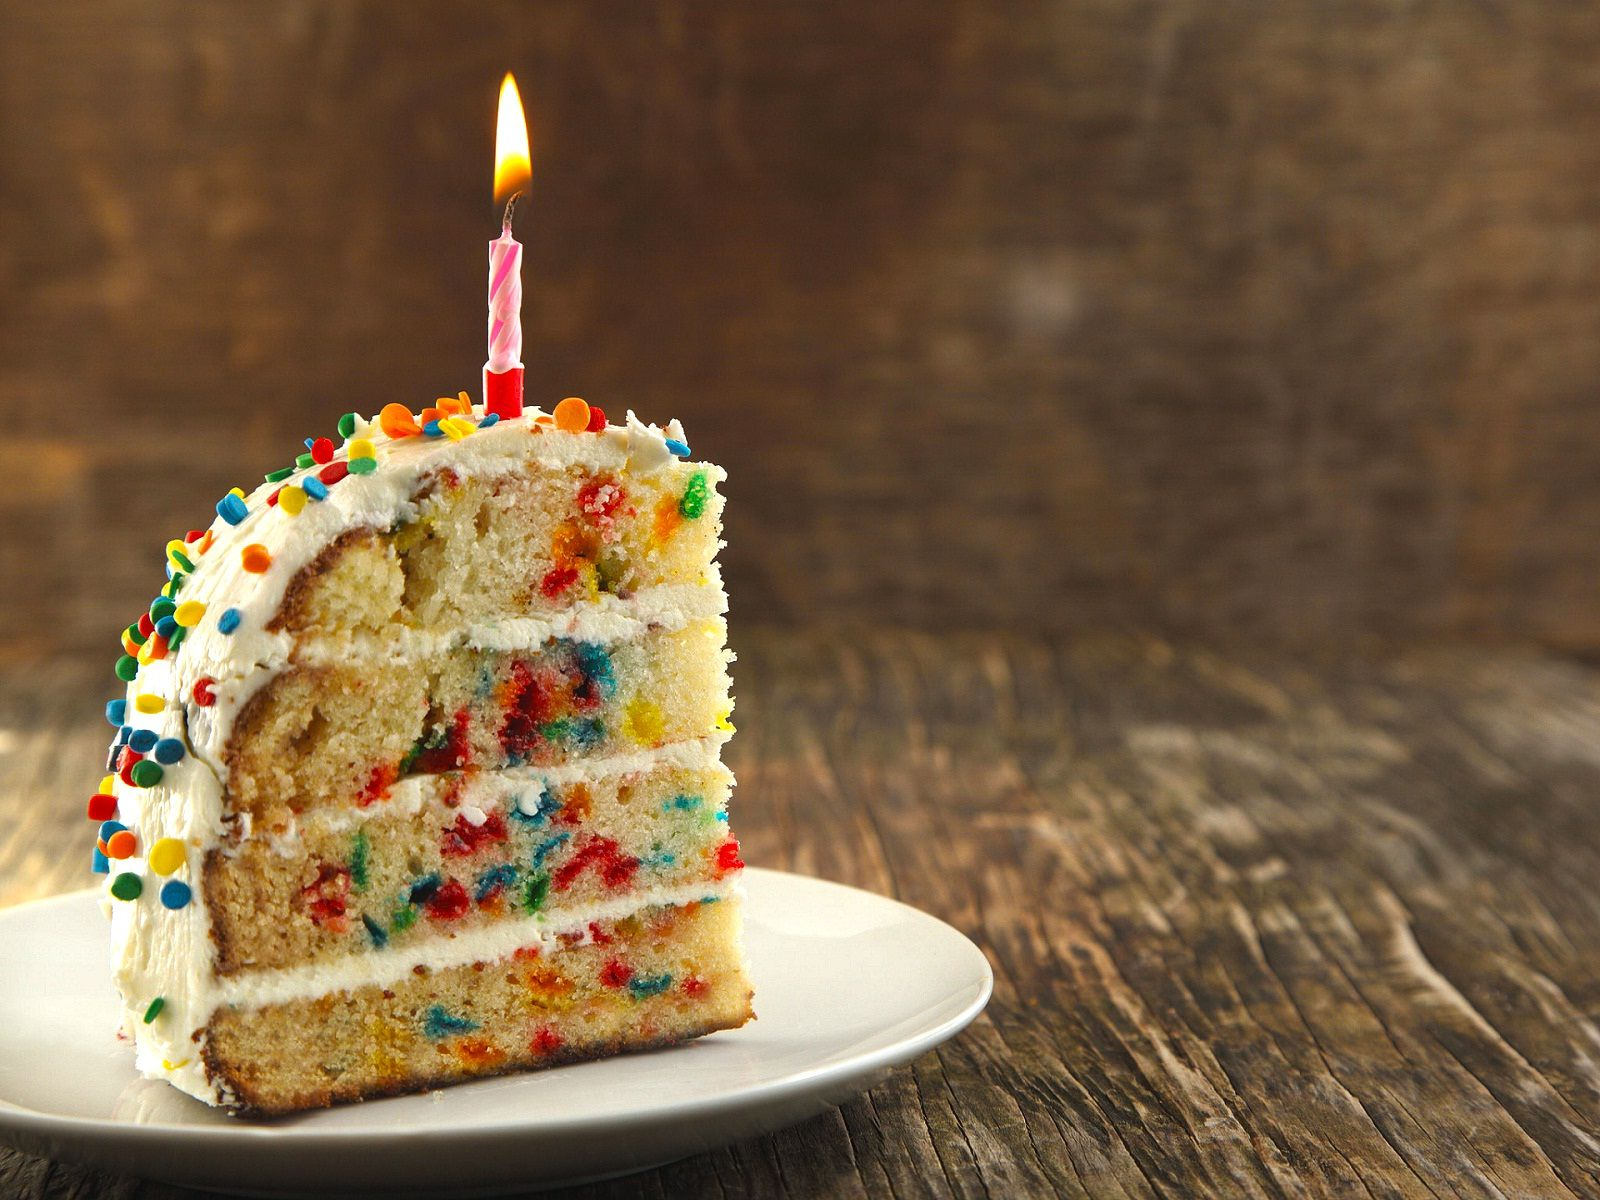 Download Free The Birthday Cake Wallpapers For Your Mobile Phone